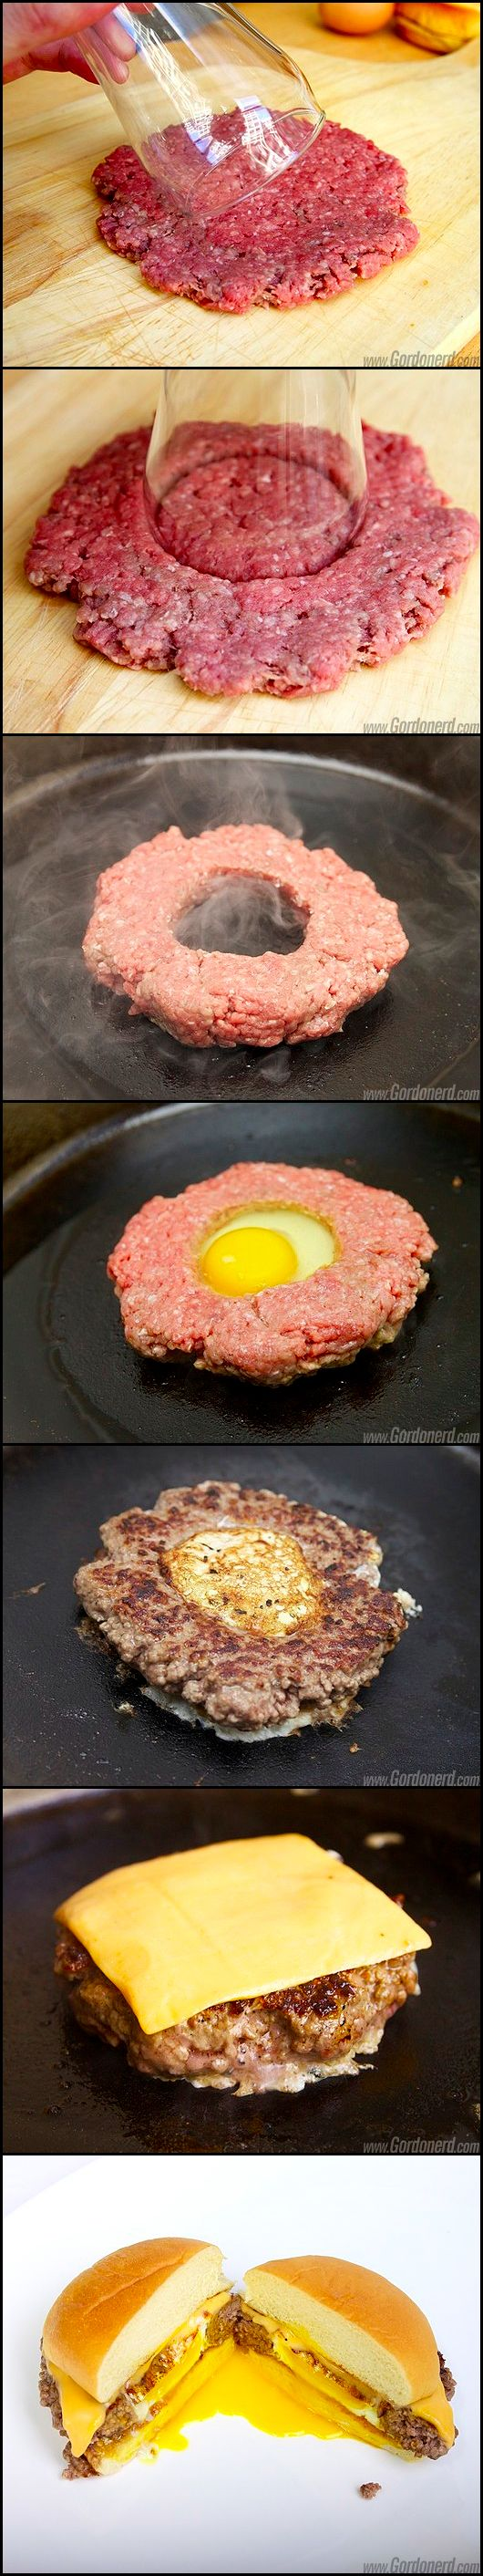 fried egg hamburger: Perfect Breakfast, Camps Ground Ideas, Fries Eggs, Sandwiches Ideas, Breakfast Sandwiches, Chee Breakfast, Best Burgers, Chee Burgers Ideas, Breakfast Sausages